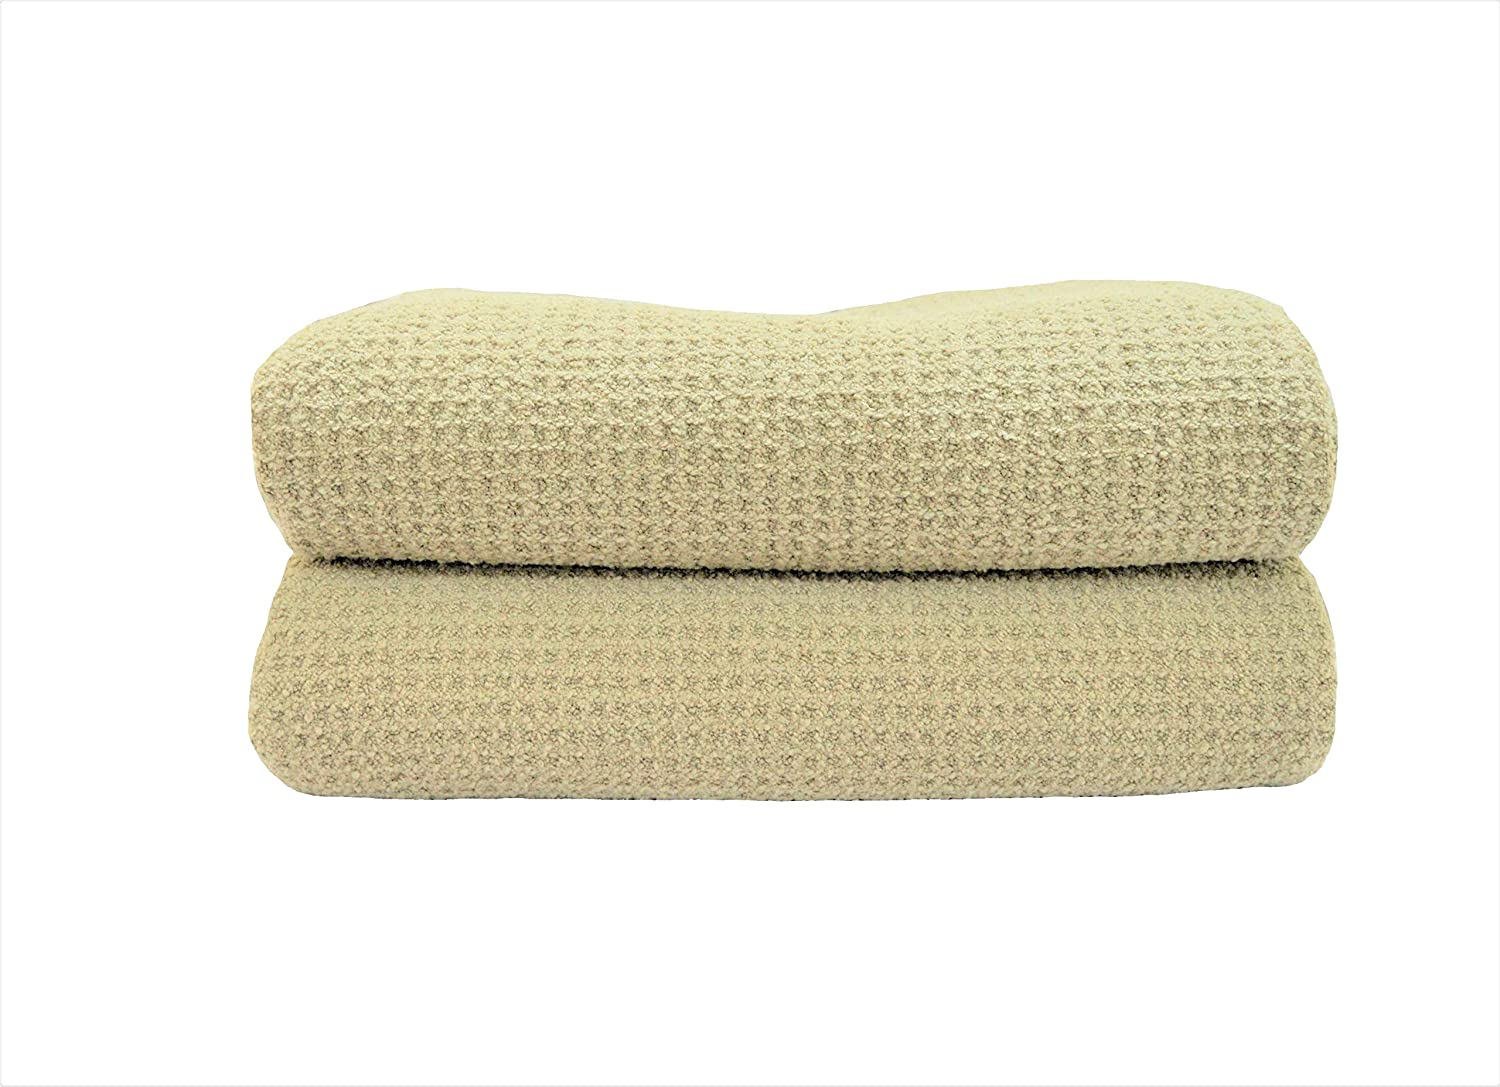 """FINA Ultra Absorbent Microfiber Waffle Bath Towel Set - 2 of Extra Large Bath Towel Set in Sage Color (29"""" x 55"""")- Bath, Body, Spa, Swimming,Travel, Dorm, Small Backpacking"""